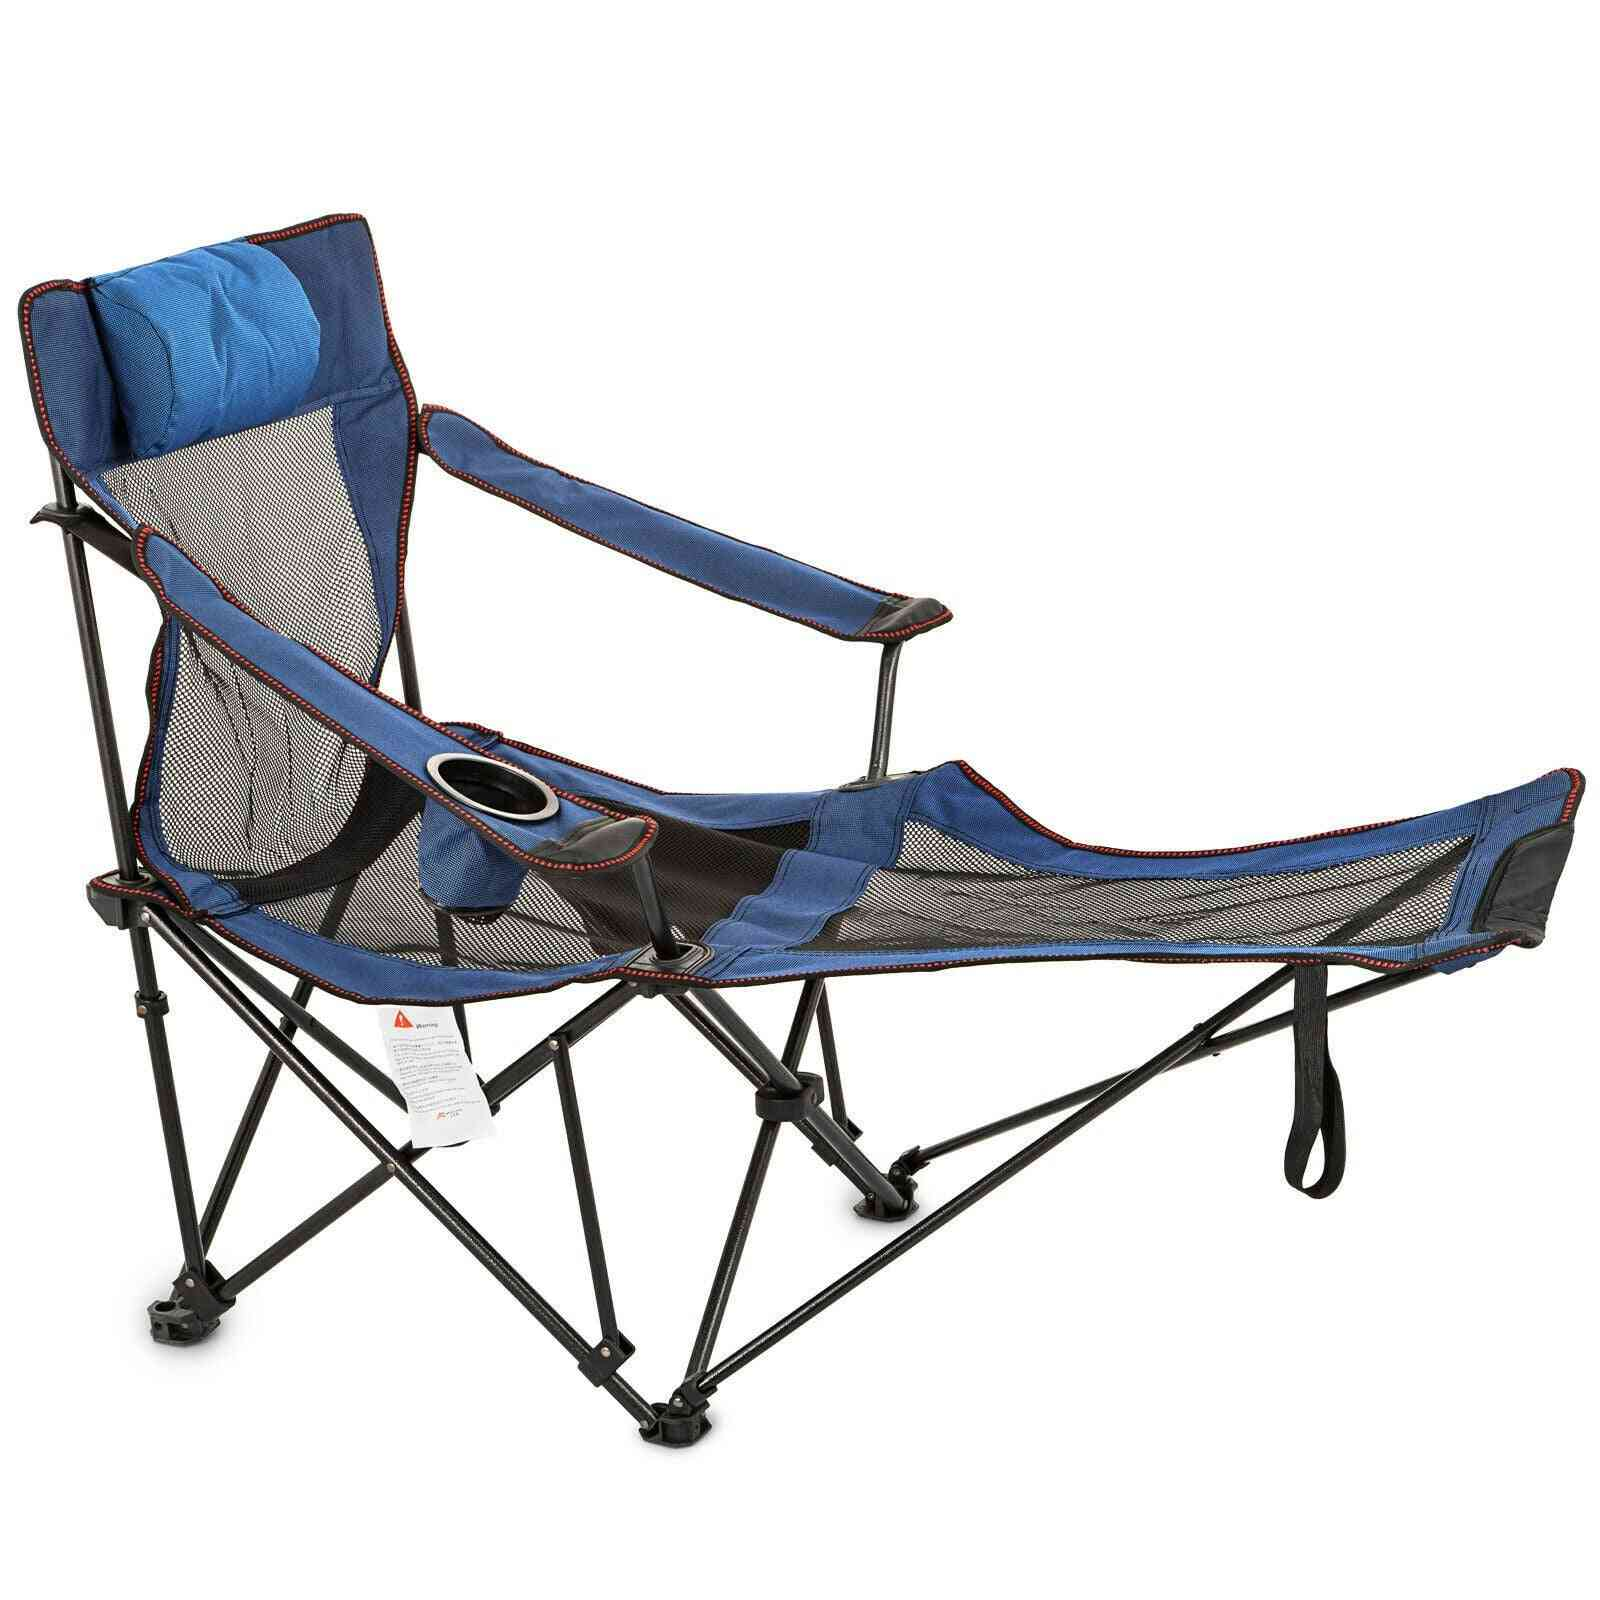 Folding Lounge Chair Blue Relax Sofa  Armchair Camping